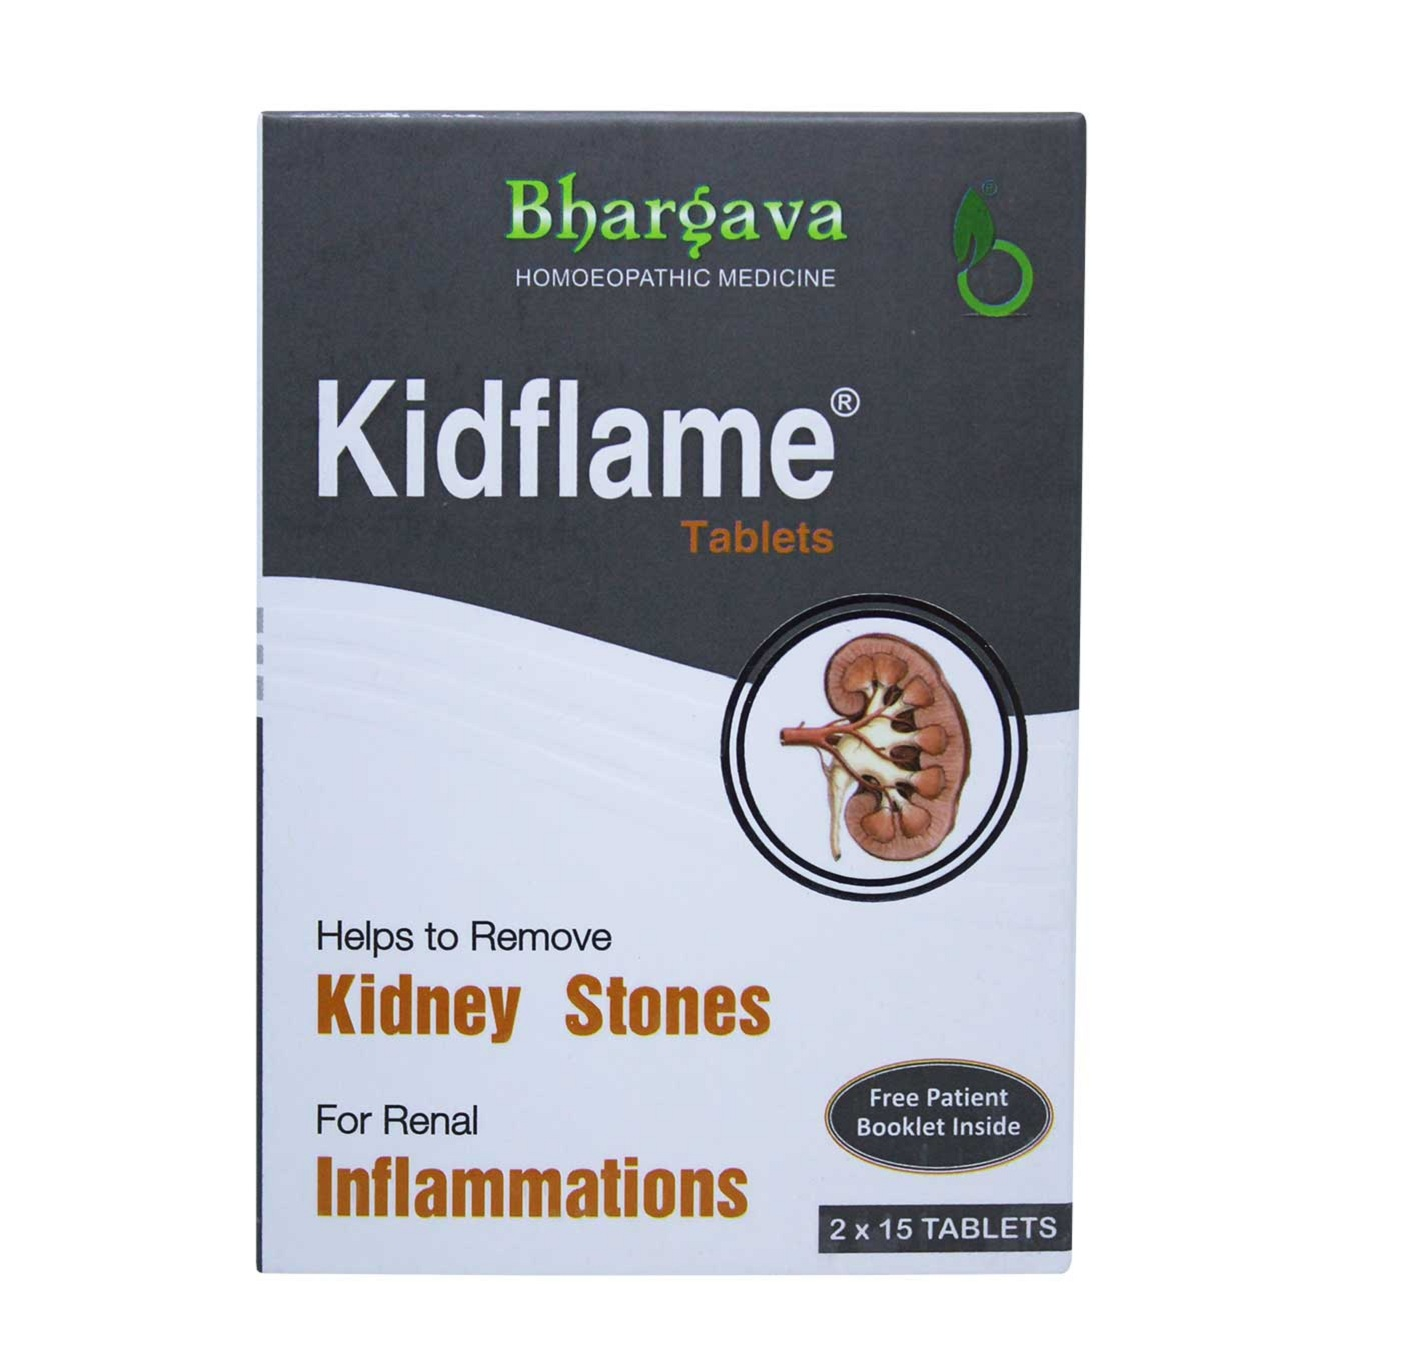 Kidflame Tablet  For kidney Stone  style=